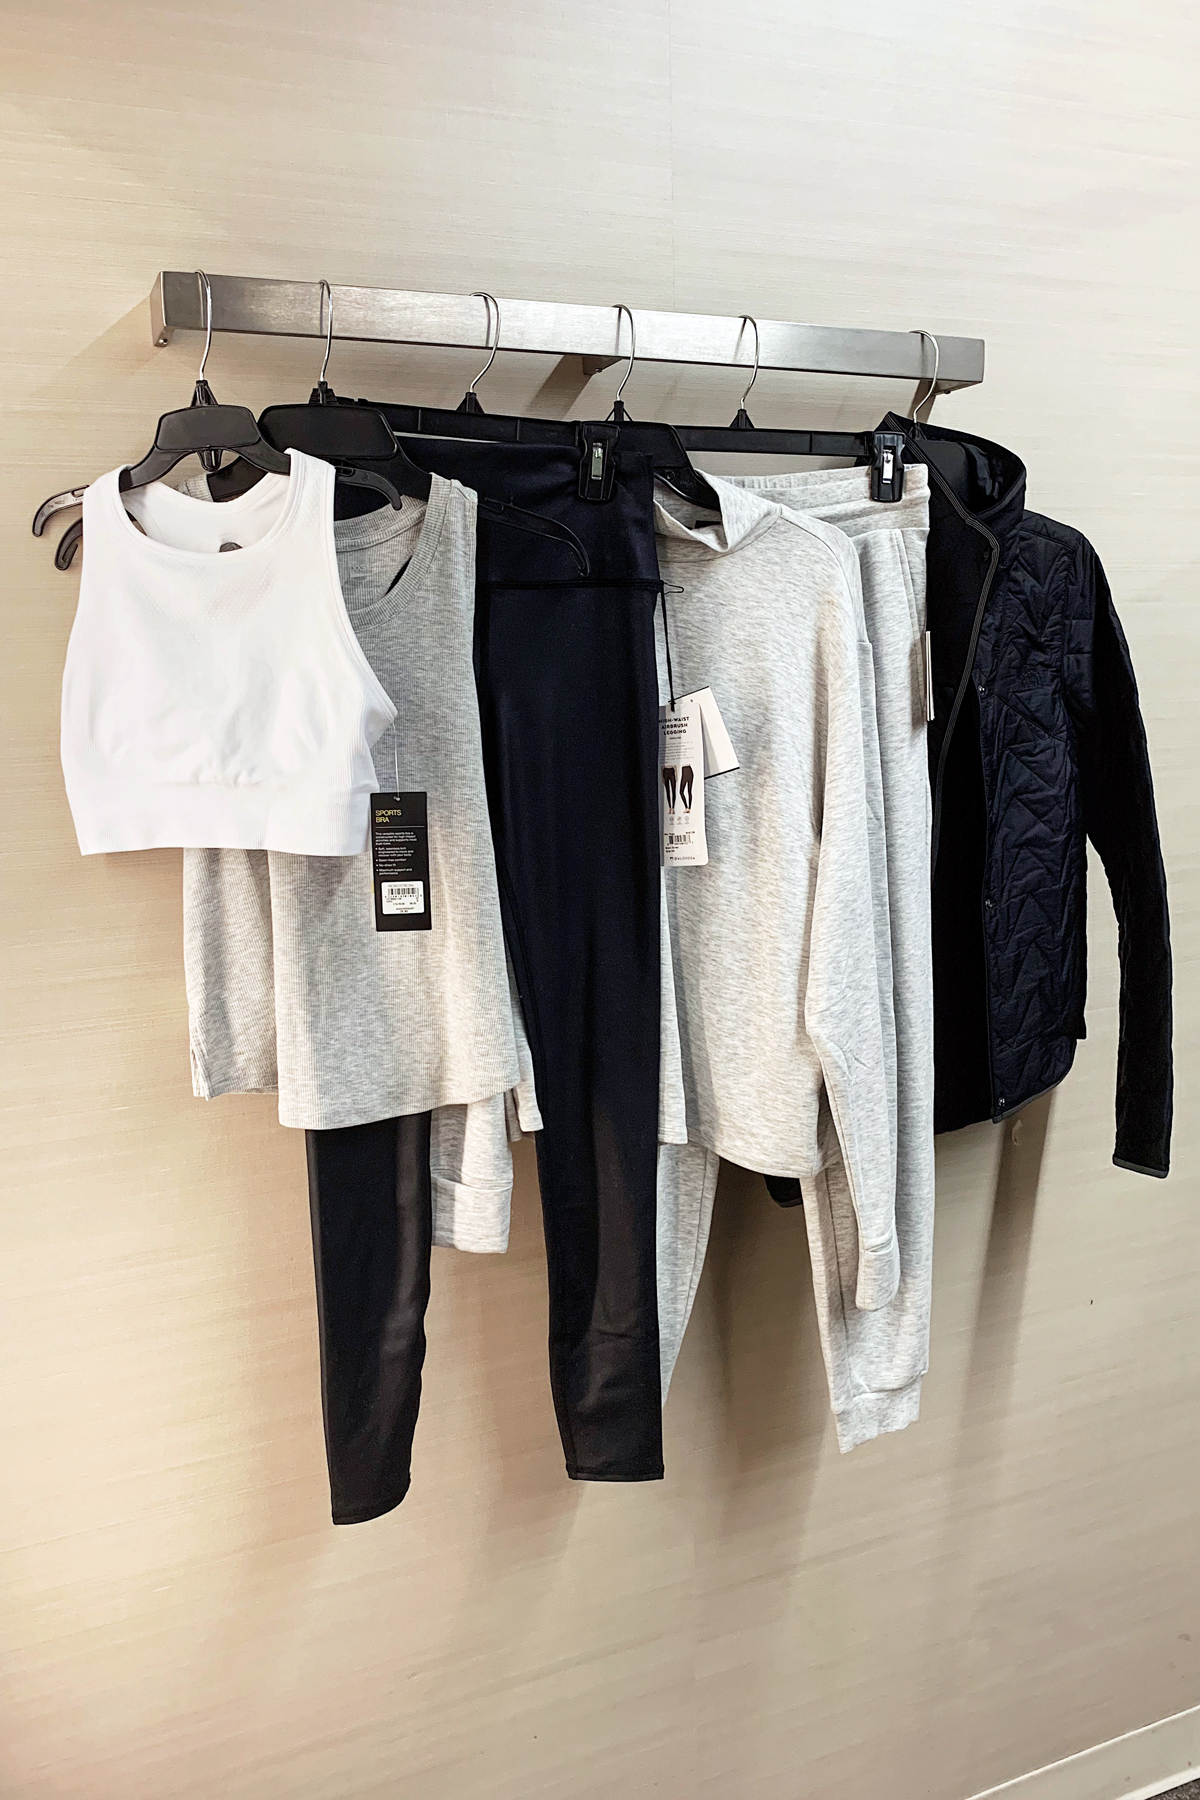 Fashion Jackson 2019 Nordstrom Anniversary Sale Activewear Purchases